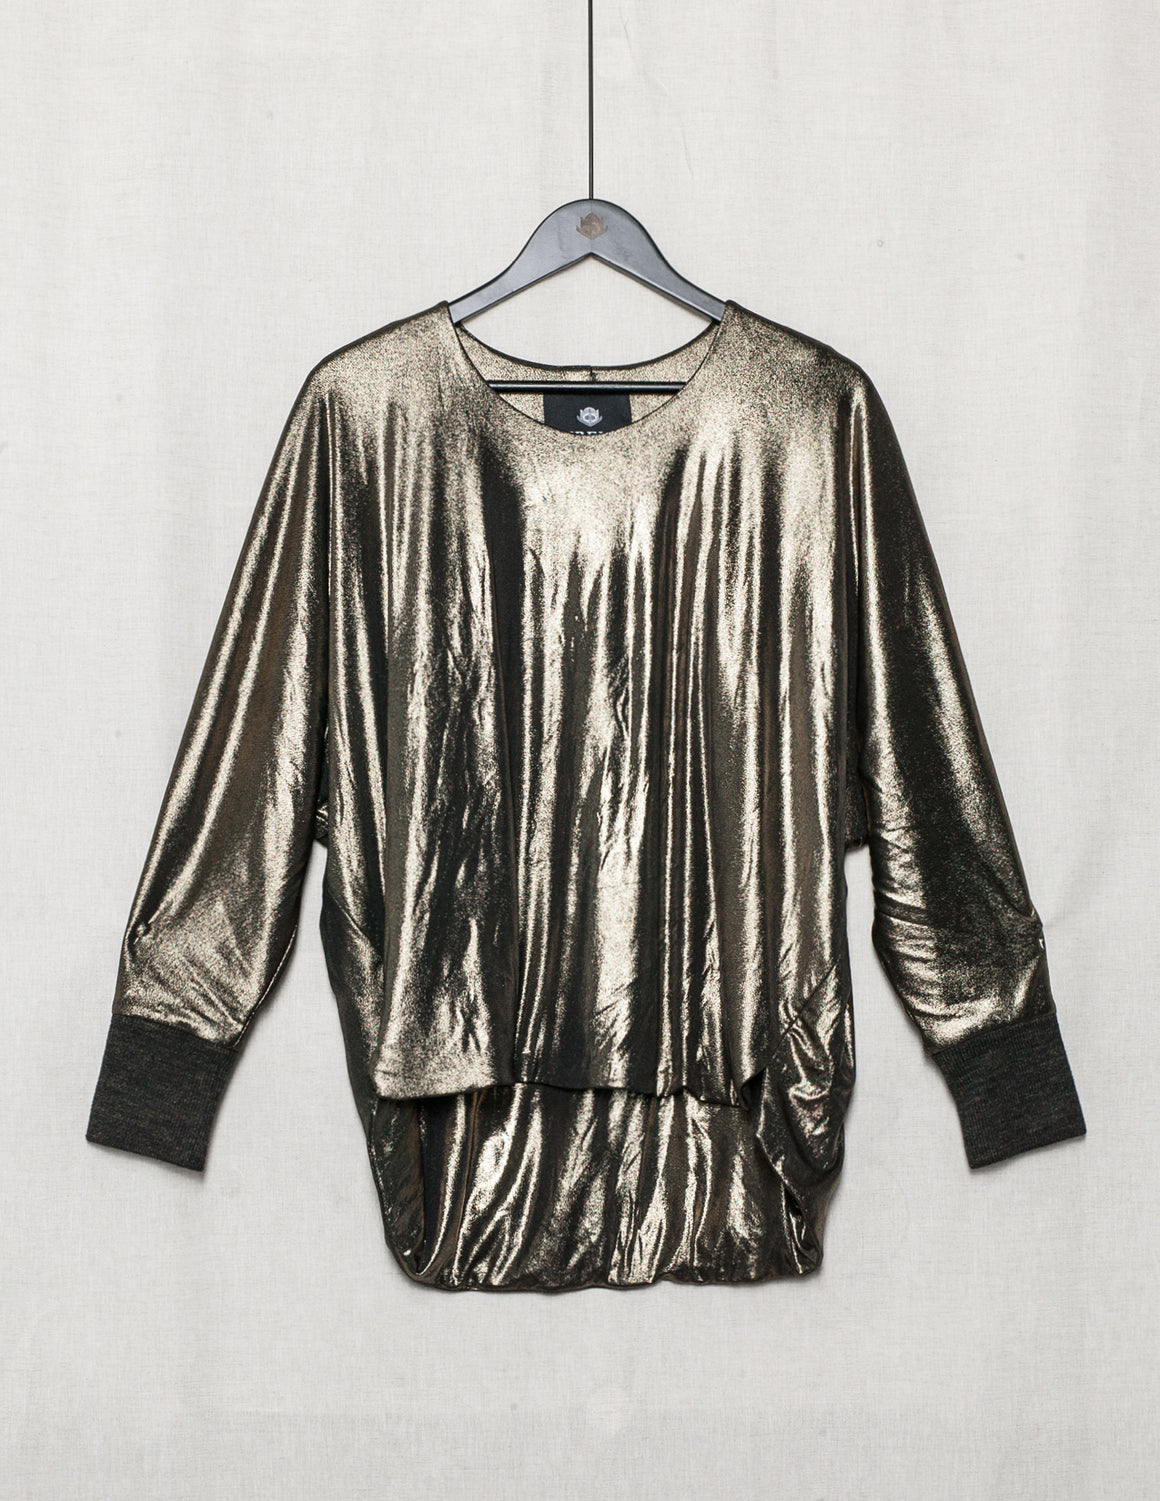 SAMPLE - SWEATER - JERSEY gold